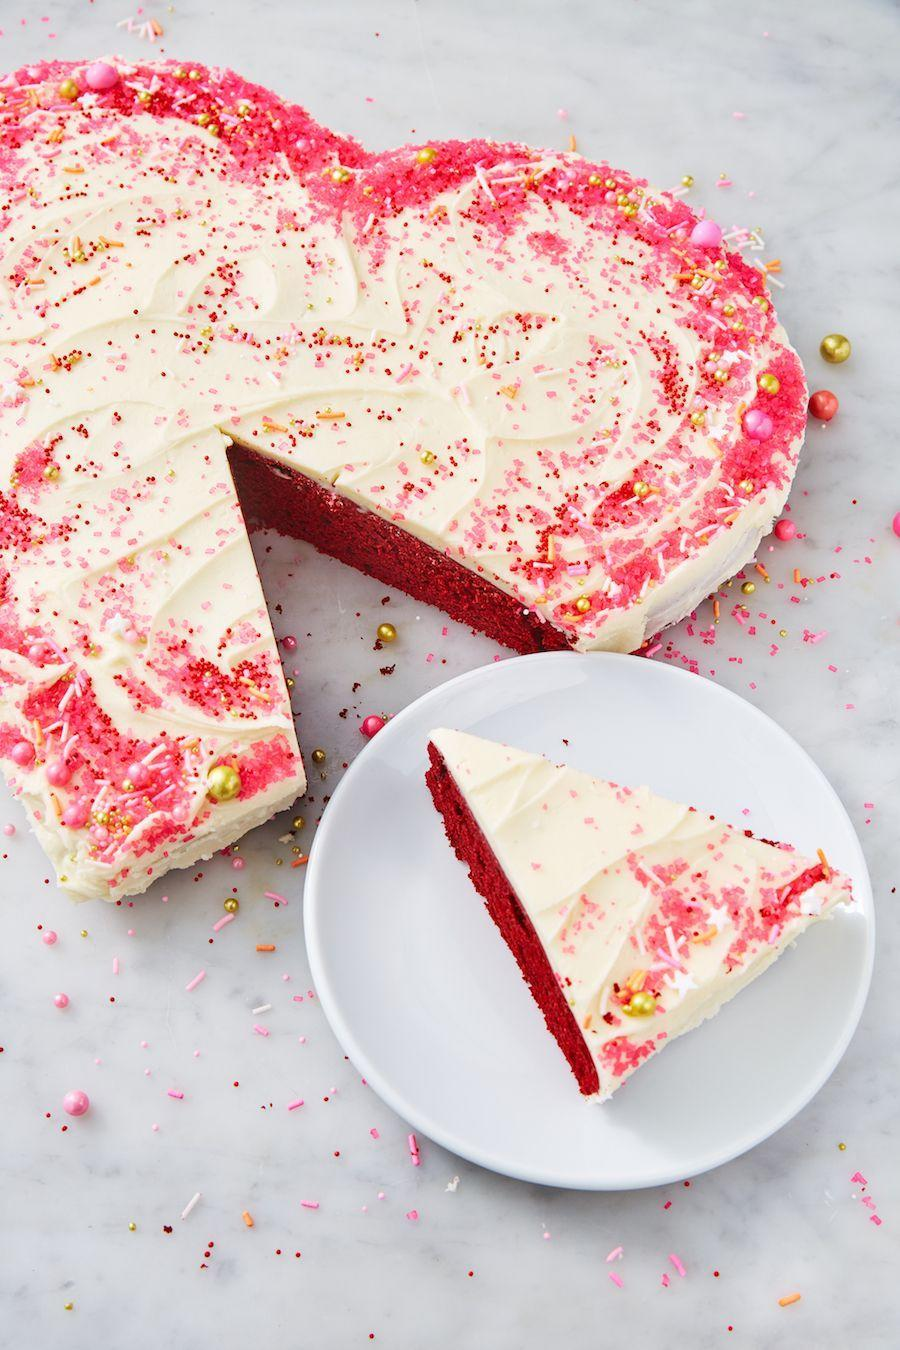 """<p>It doesn't get much more festive than this...</p><p>Get the recipe from <a href=""""https://www.delish.com/cooking/recipe-ideas/a25846375/heart-shaped-cake-recipe/"""" rel=""""nofollow noopener"""" target=""""_blank"""" data-ylk=""""slk:Delish"""" class=""""link rapid-noclick-resp"""">Delish</a>.</p>"""